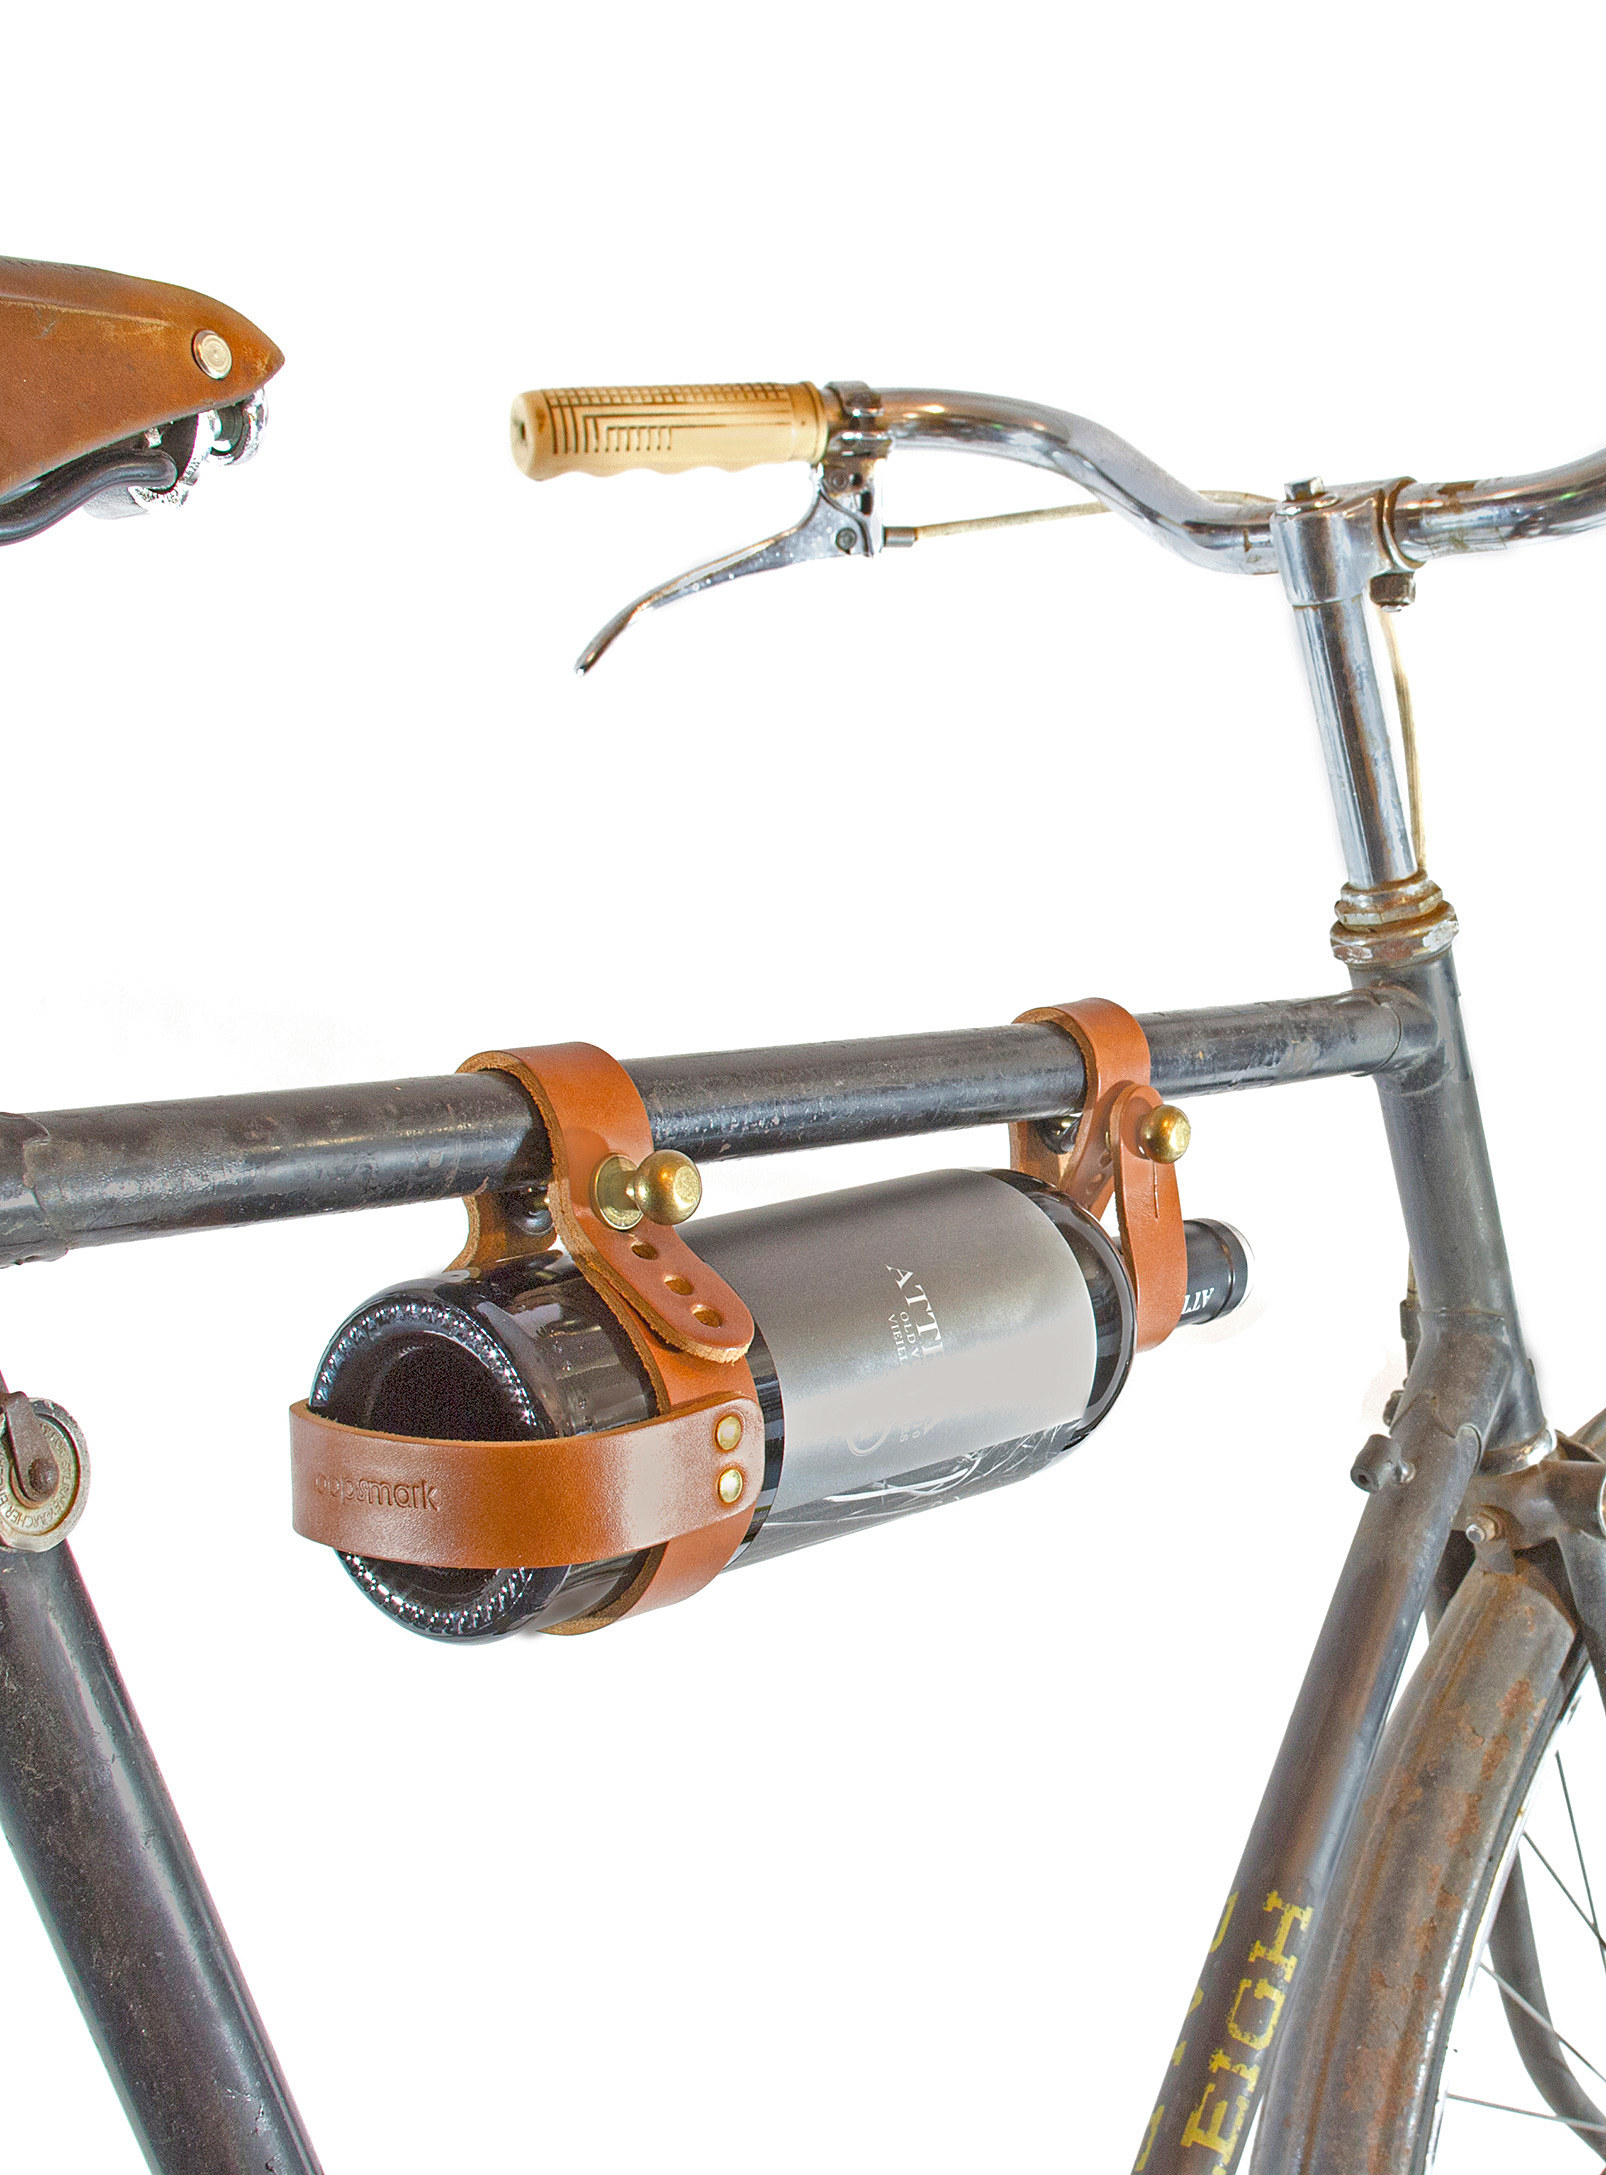 A wine bottle hanging from a bike seat with leather straps